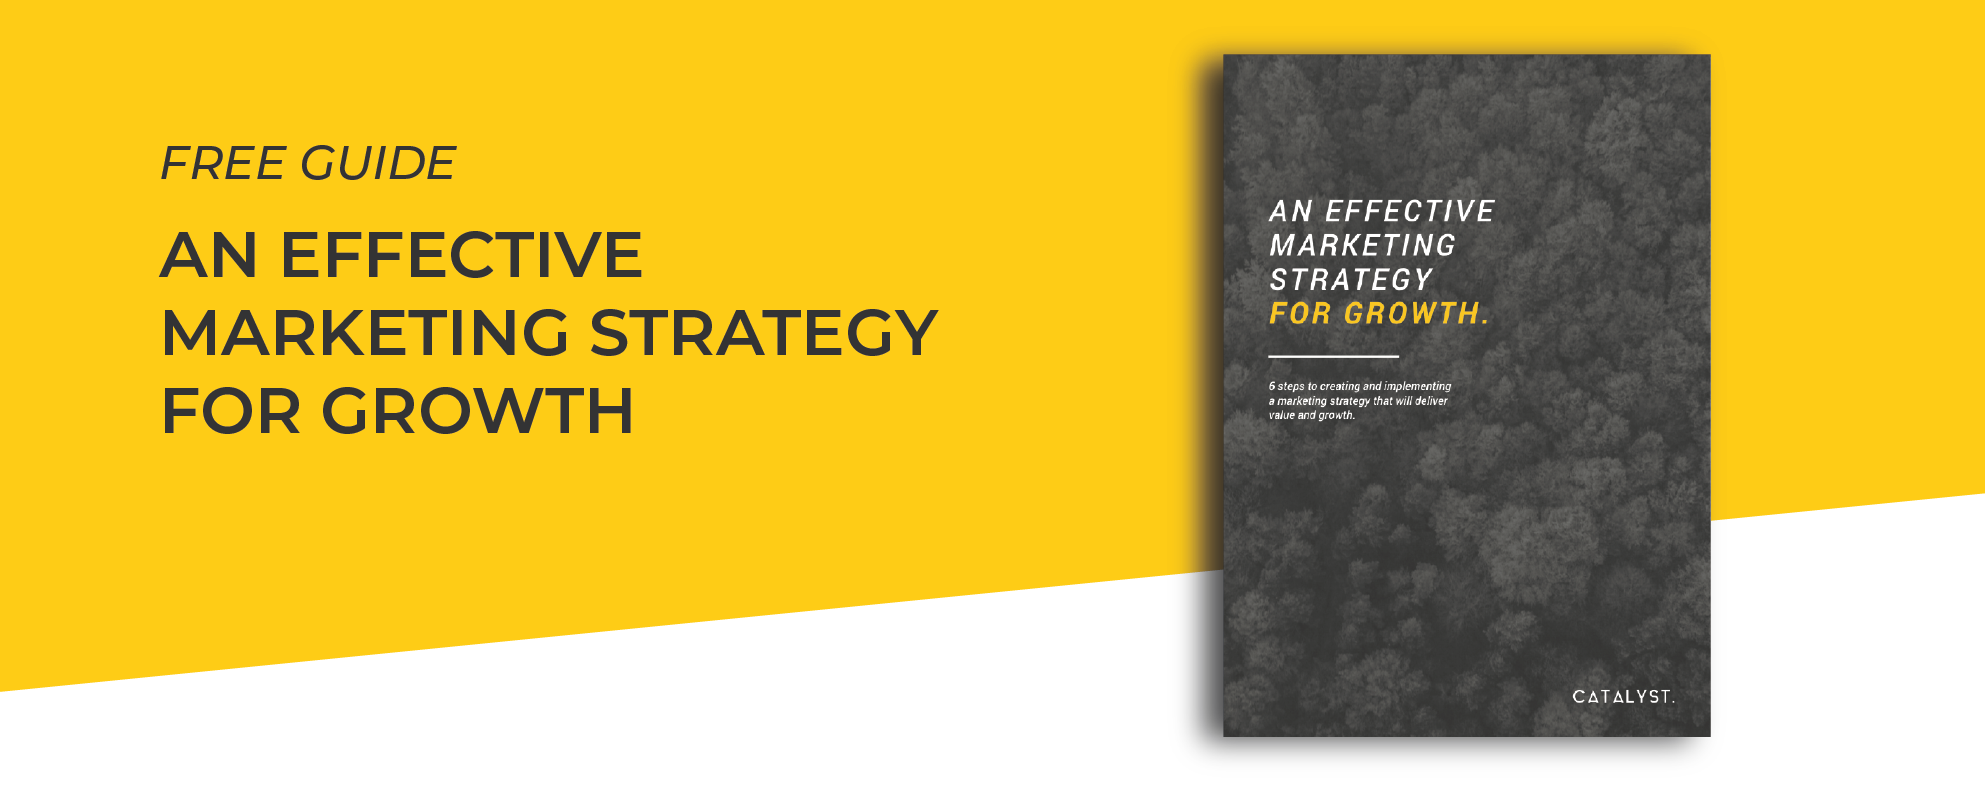 effective strategy Email background yellow